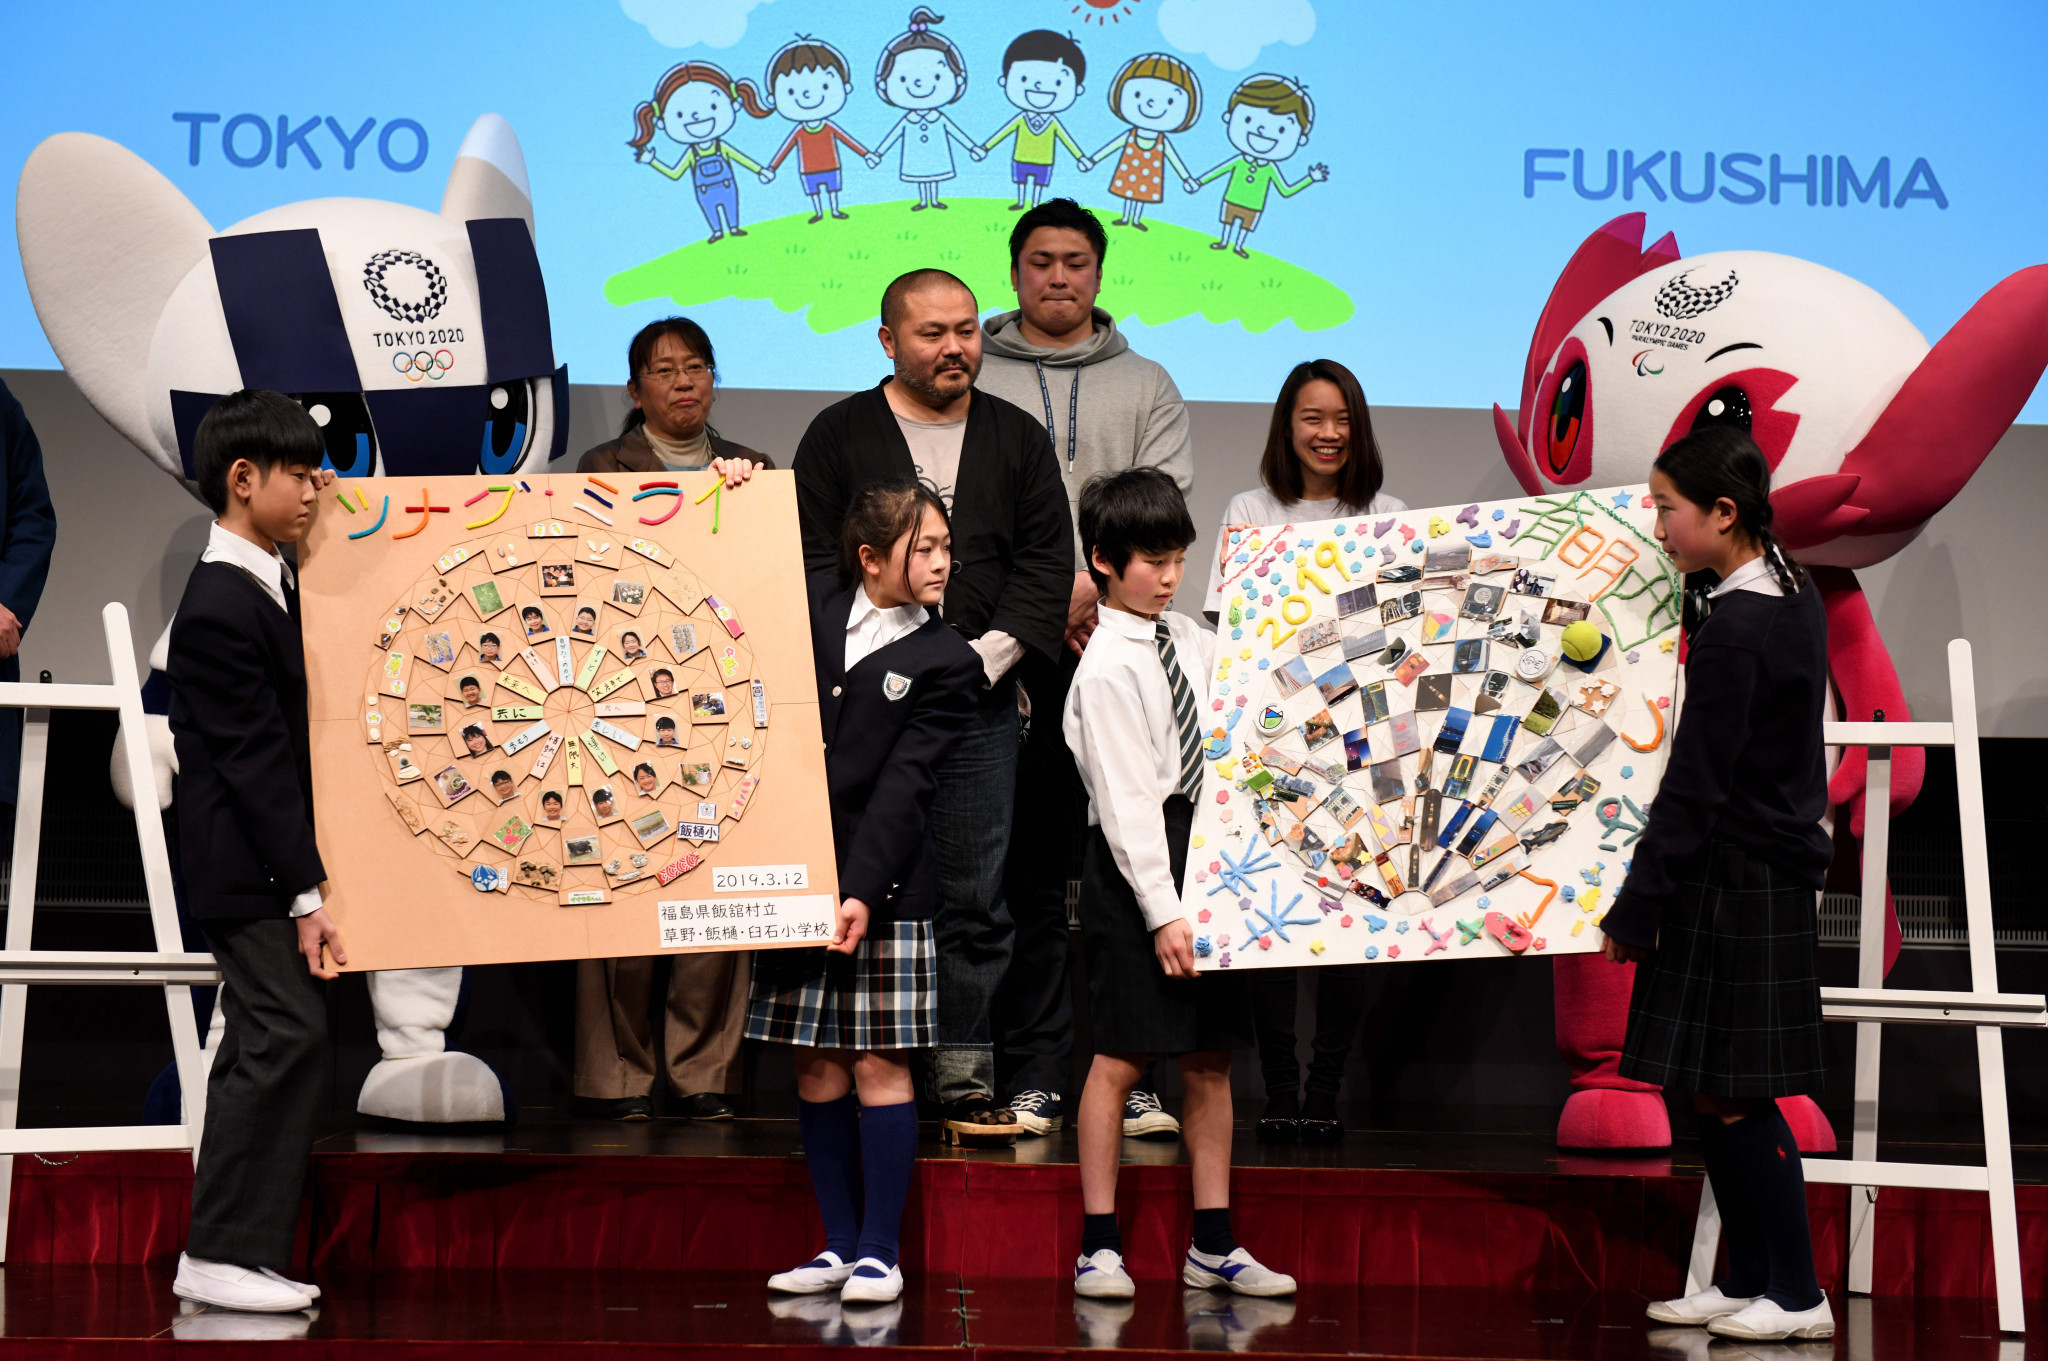 Tokyo 2020 unveil locations for special display of Olympic flame in disaster-hit areas in East Japan